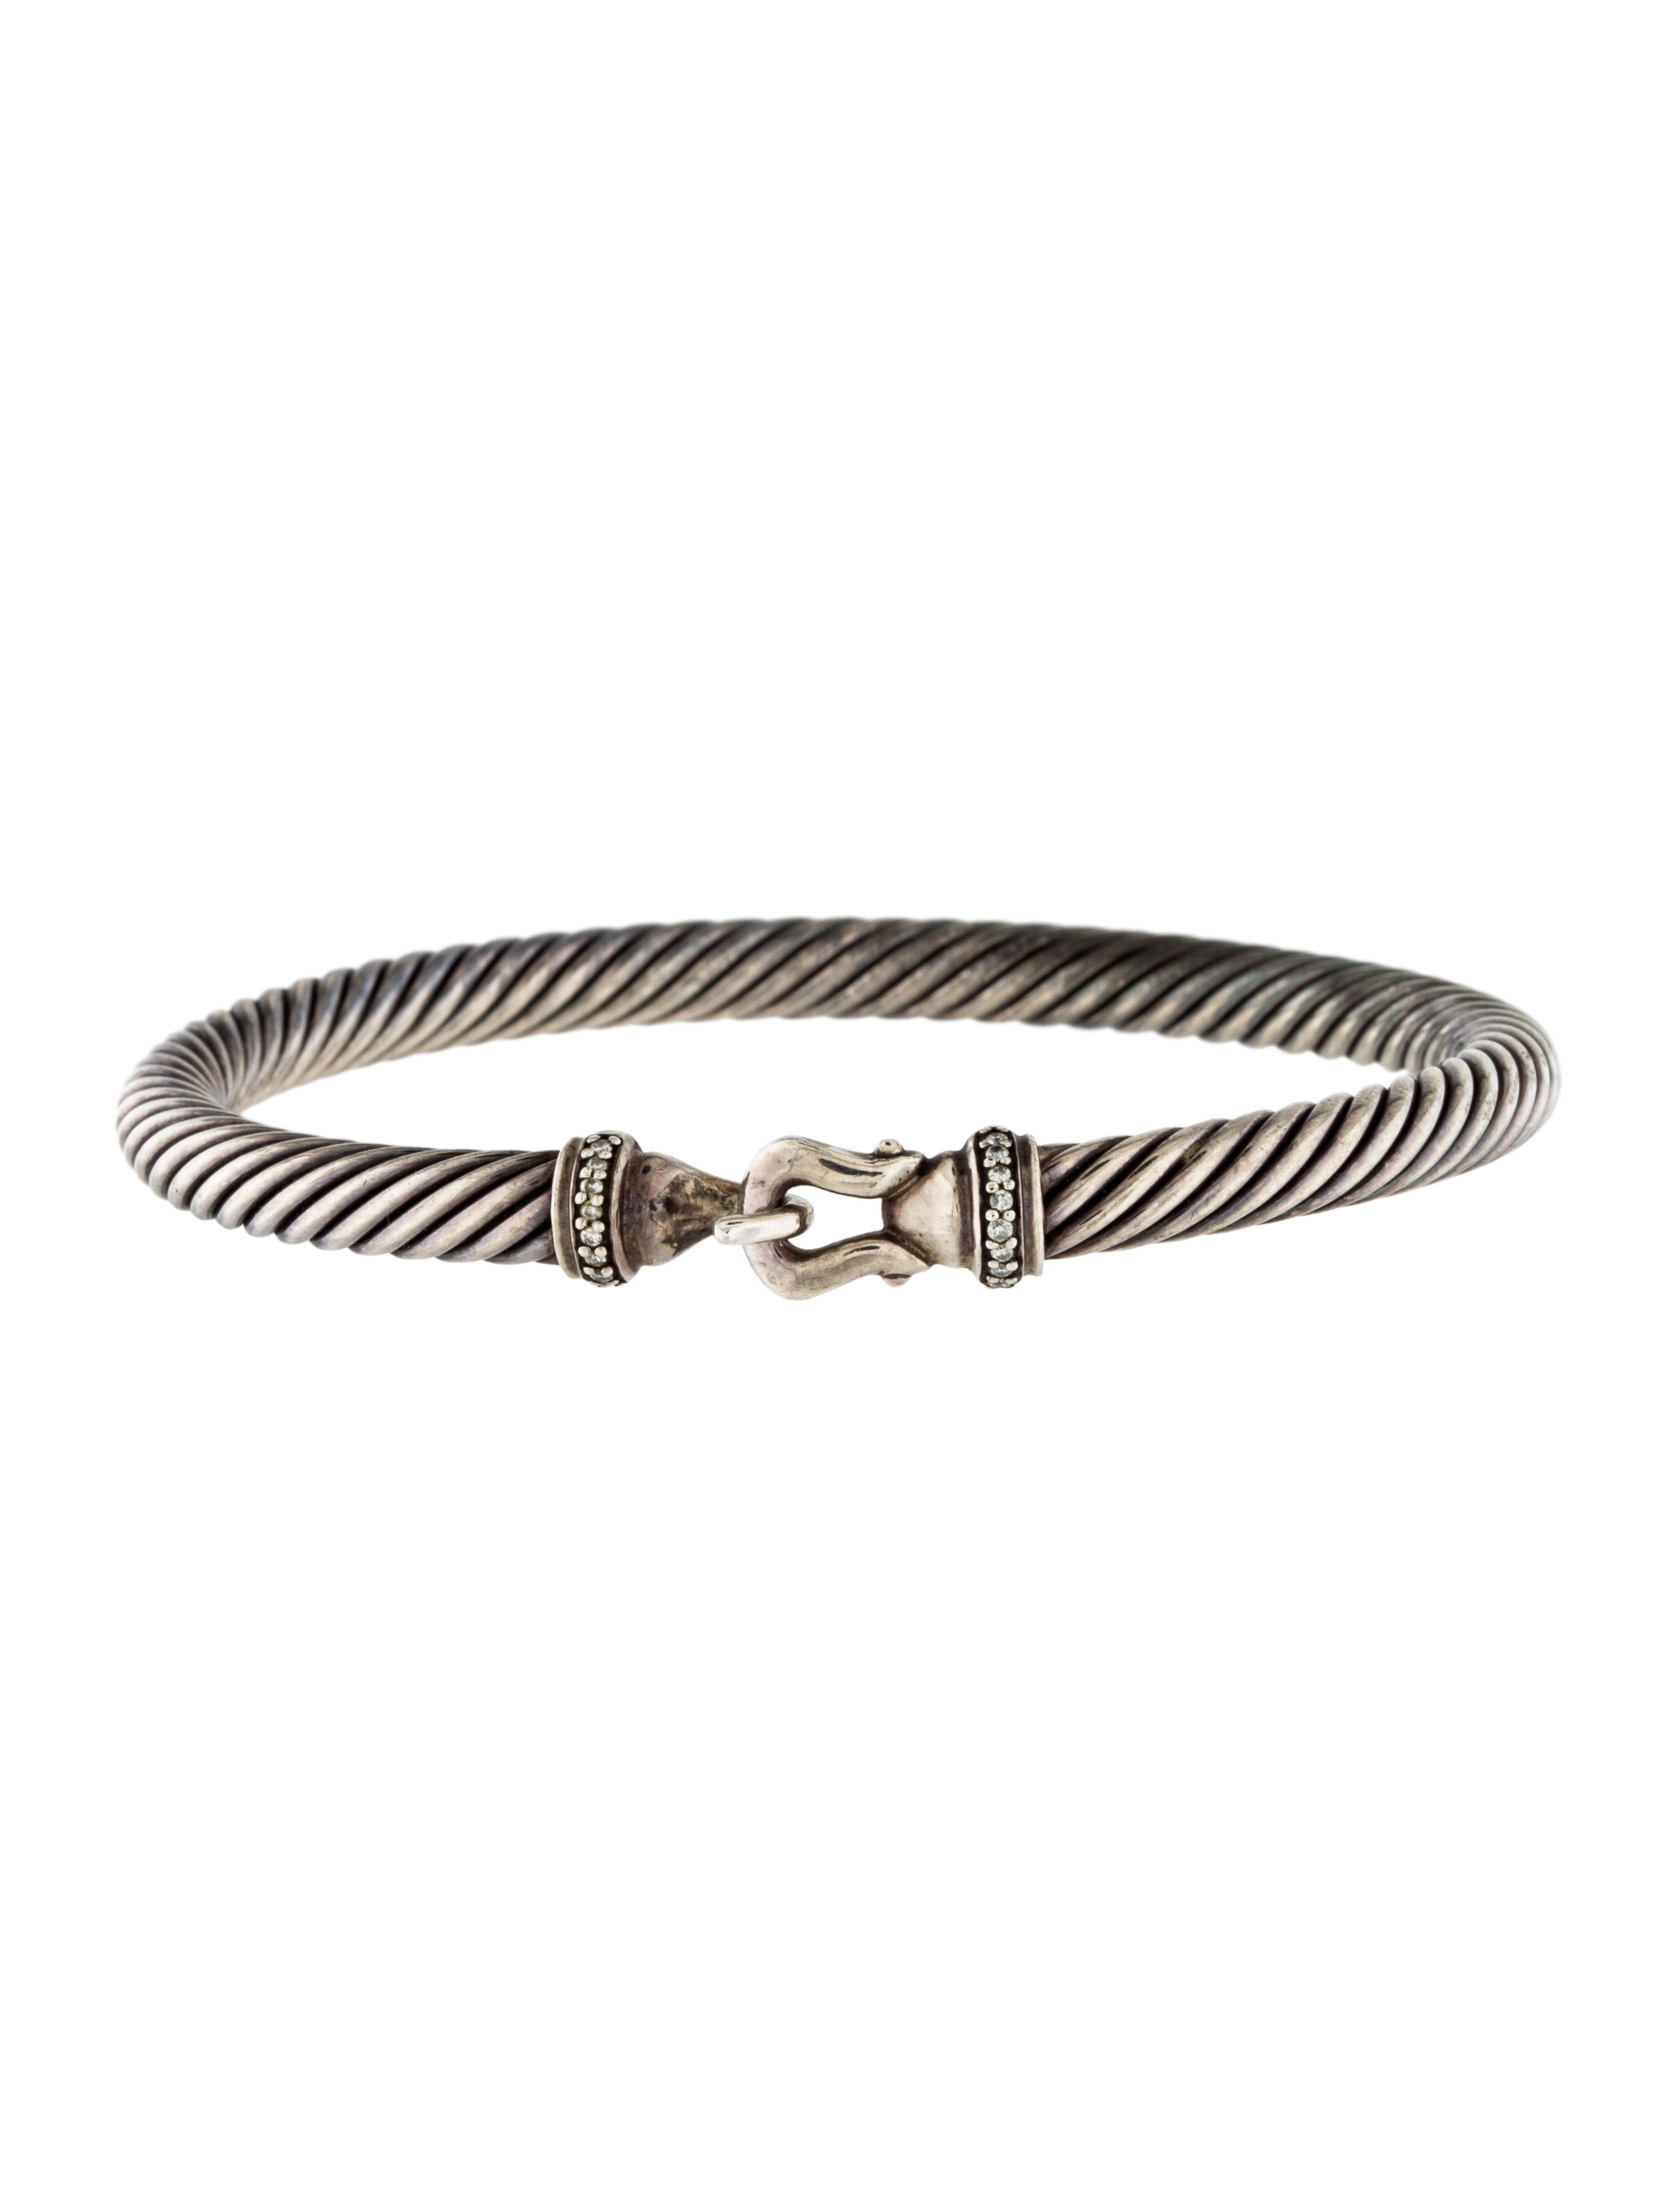 David yurman diamond cable buckle bracelet bracelets for David yurman inspired bracelet cable